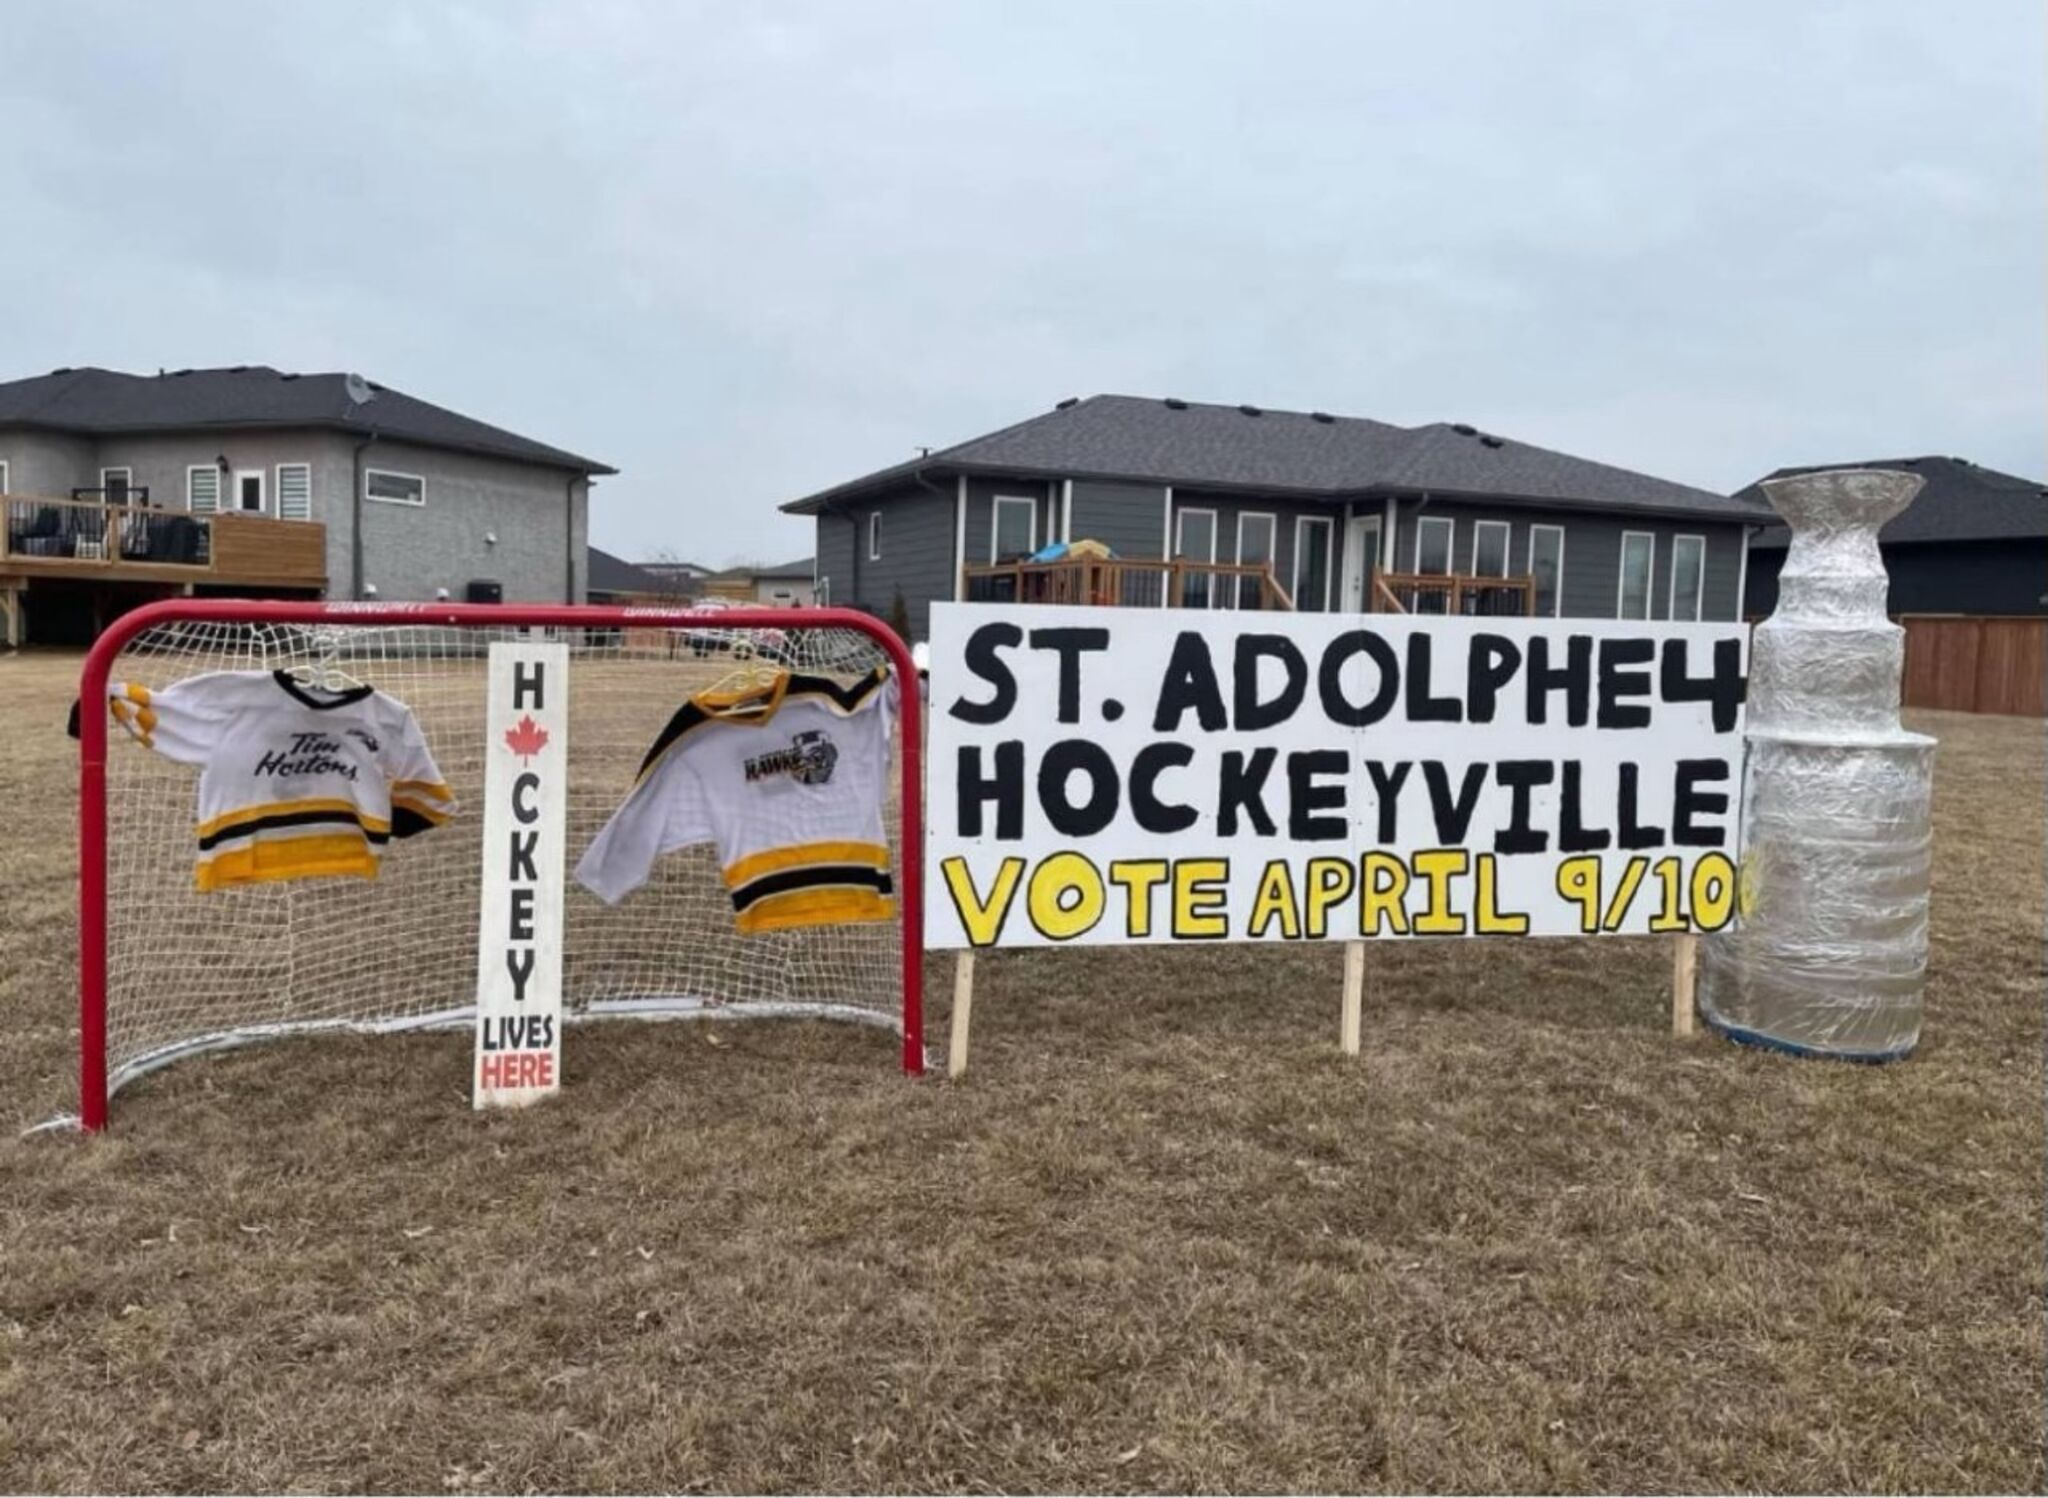 Signs like this are on full display throughout St. Adolphe as voting will be held this weekend for the Kraft Hockeyville national champion.